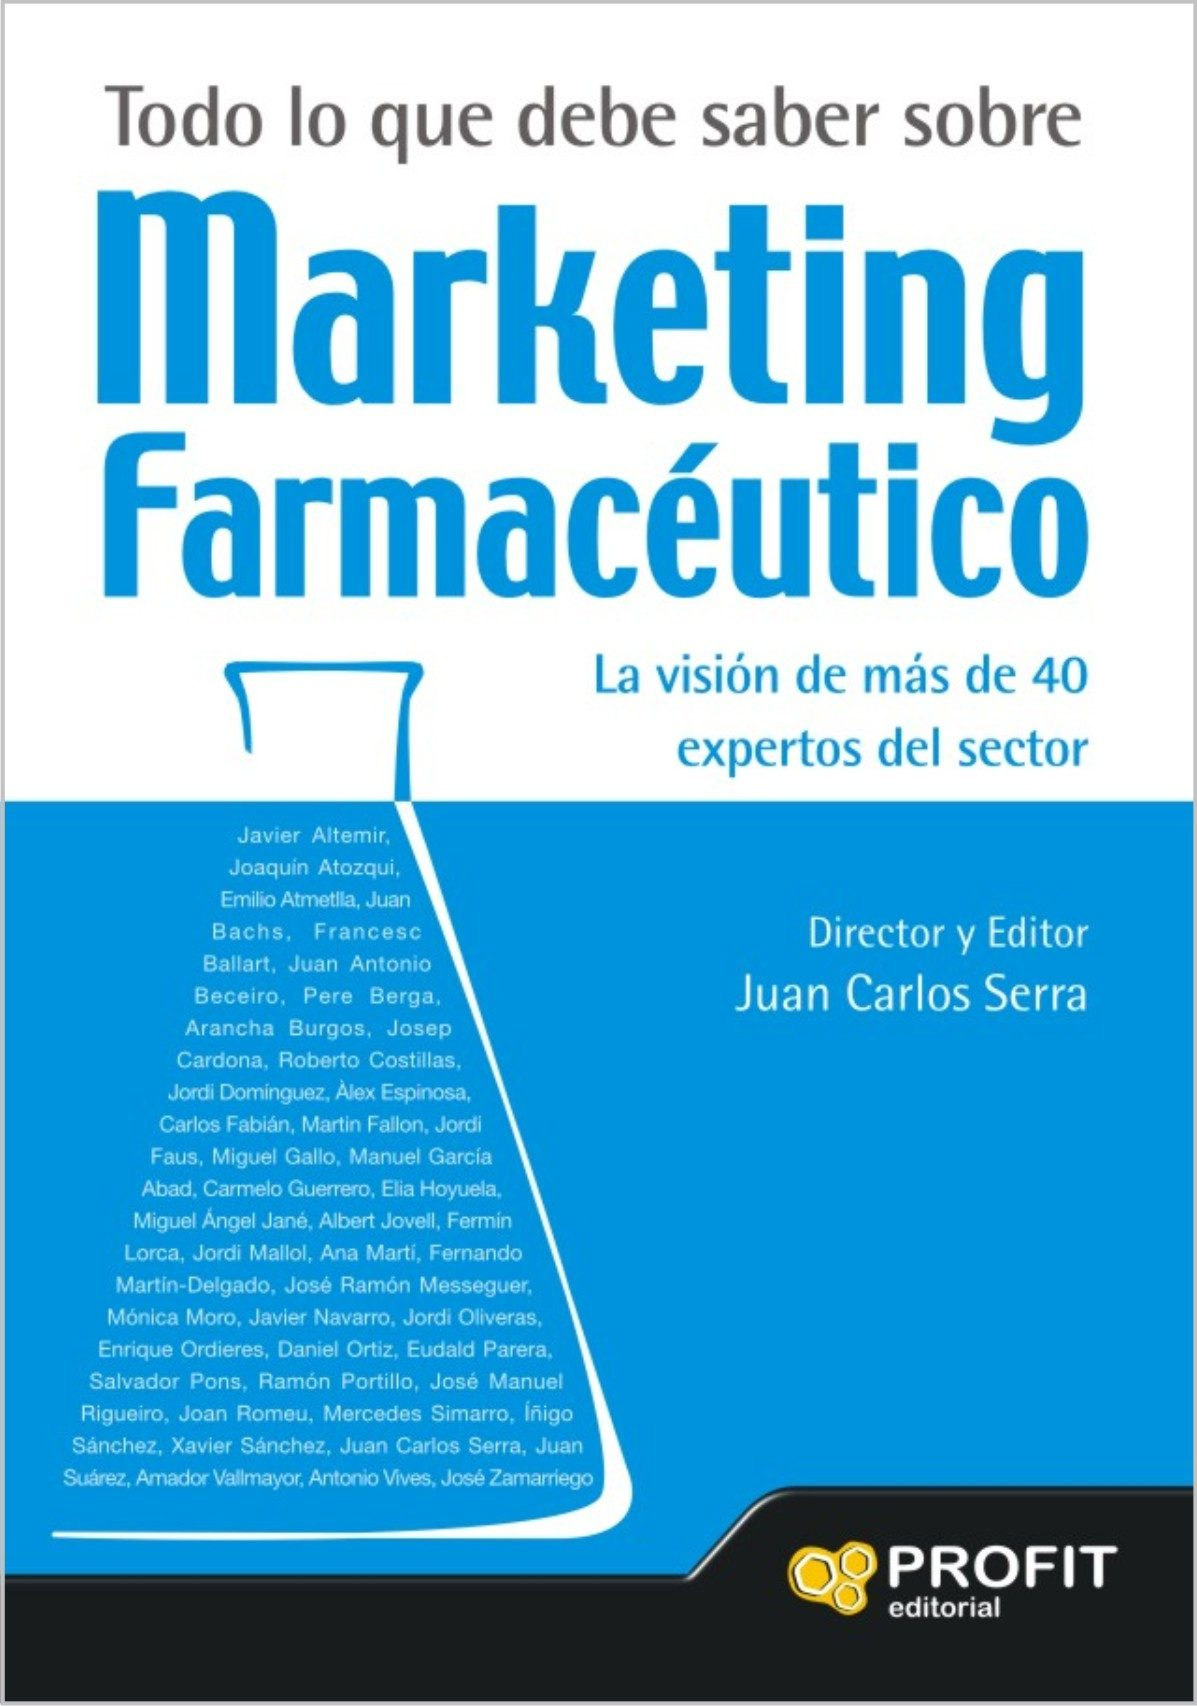 Todo lo que debe saber sobre Marketing Farmacéutico